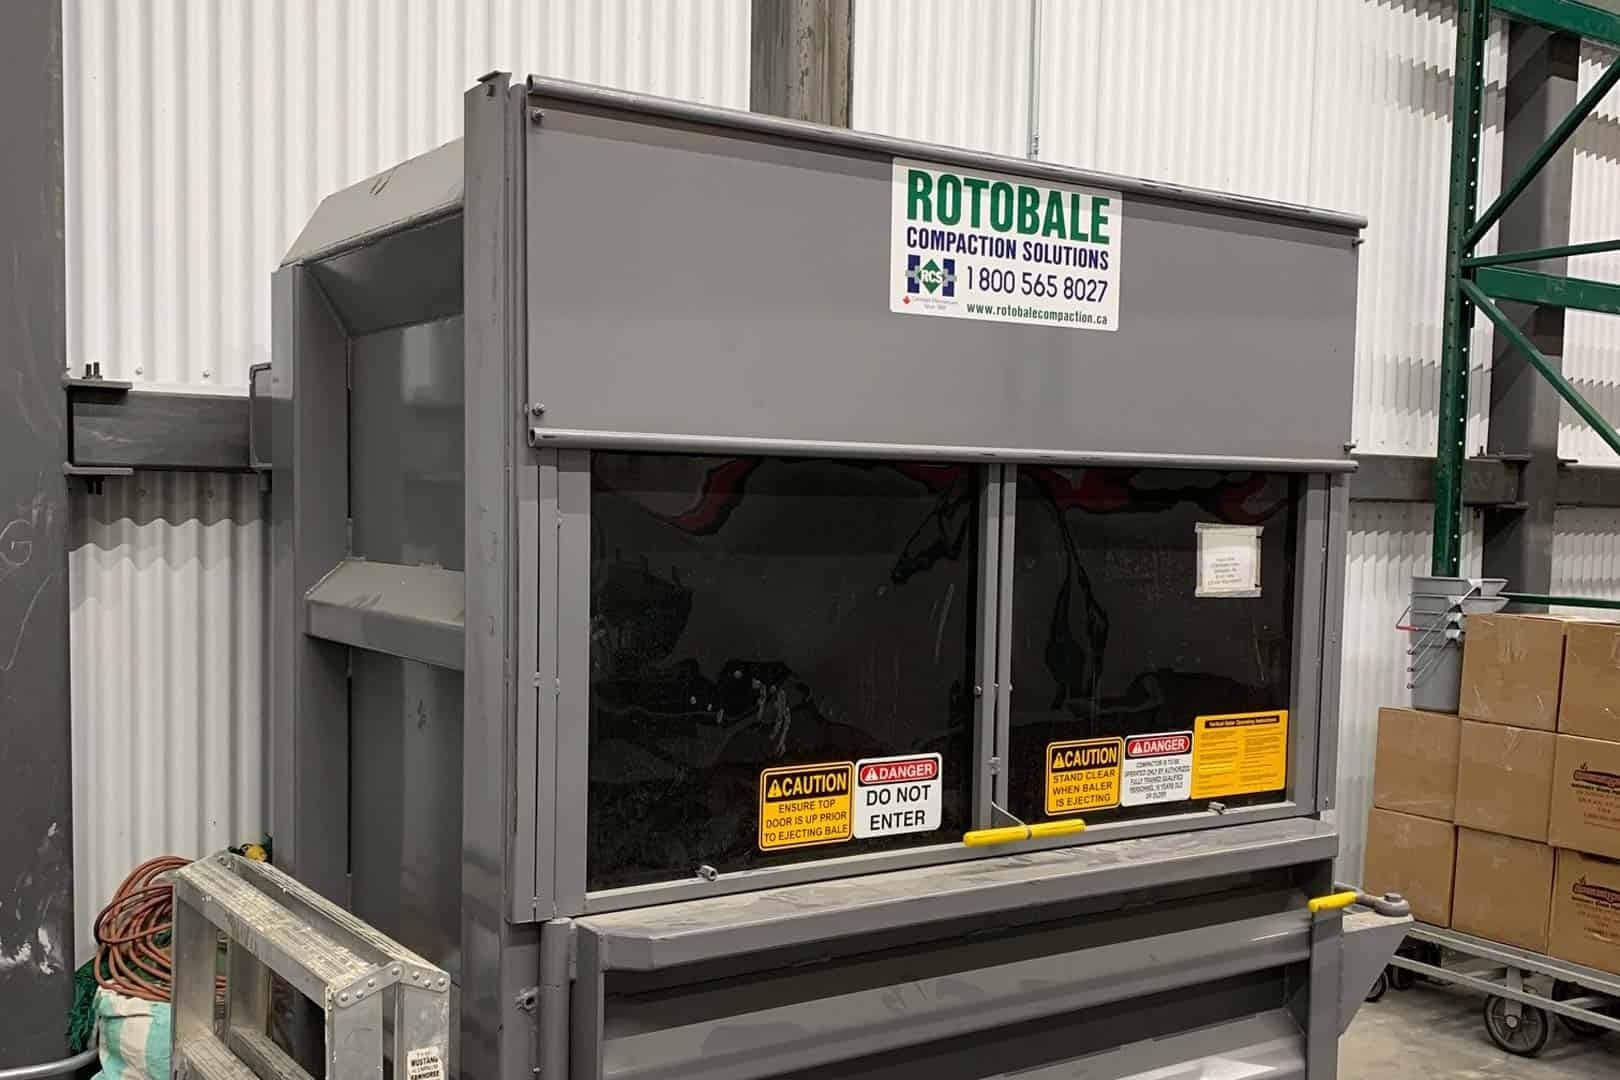 Grocery Store Wet Waste Management Solutions by Rotobale Compaction